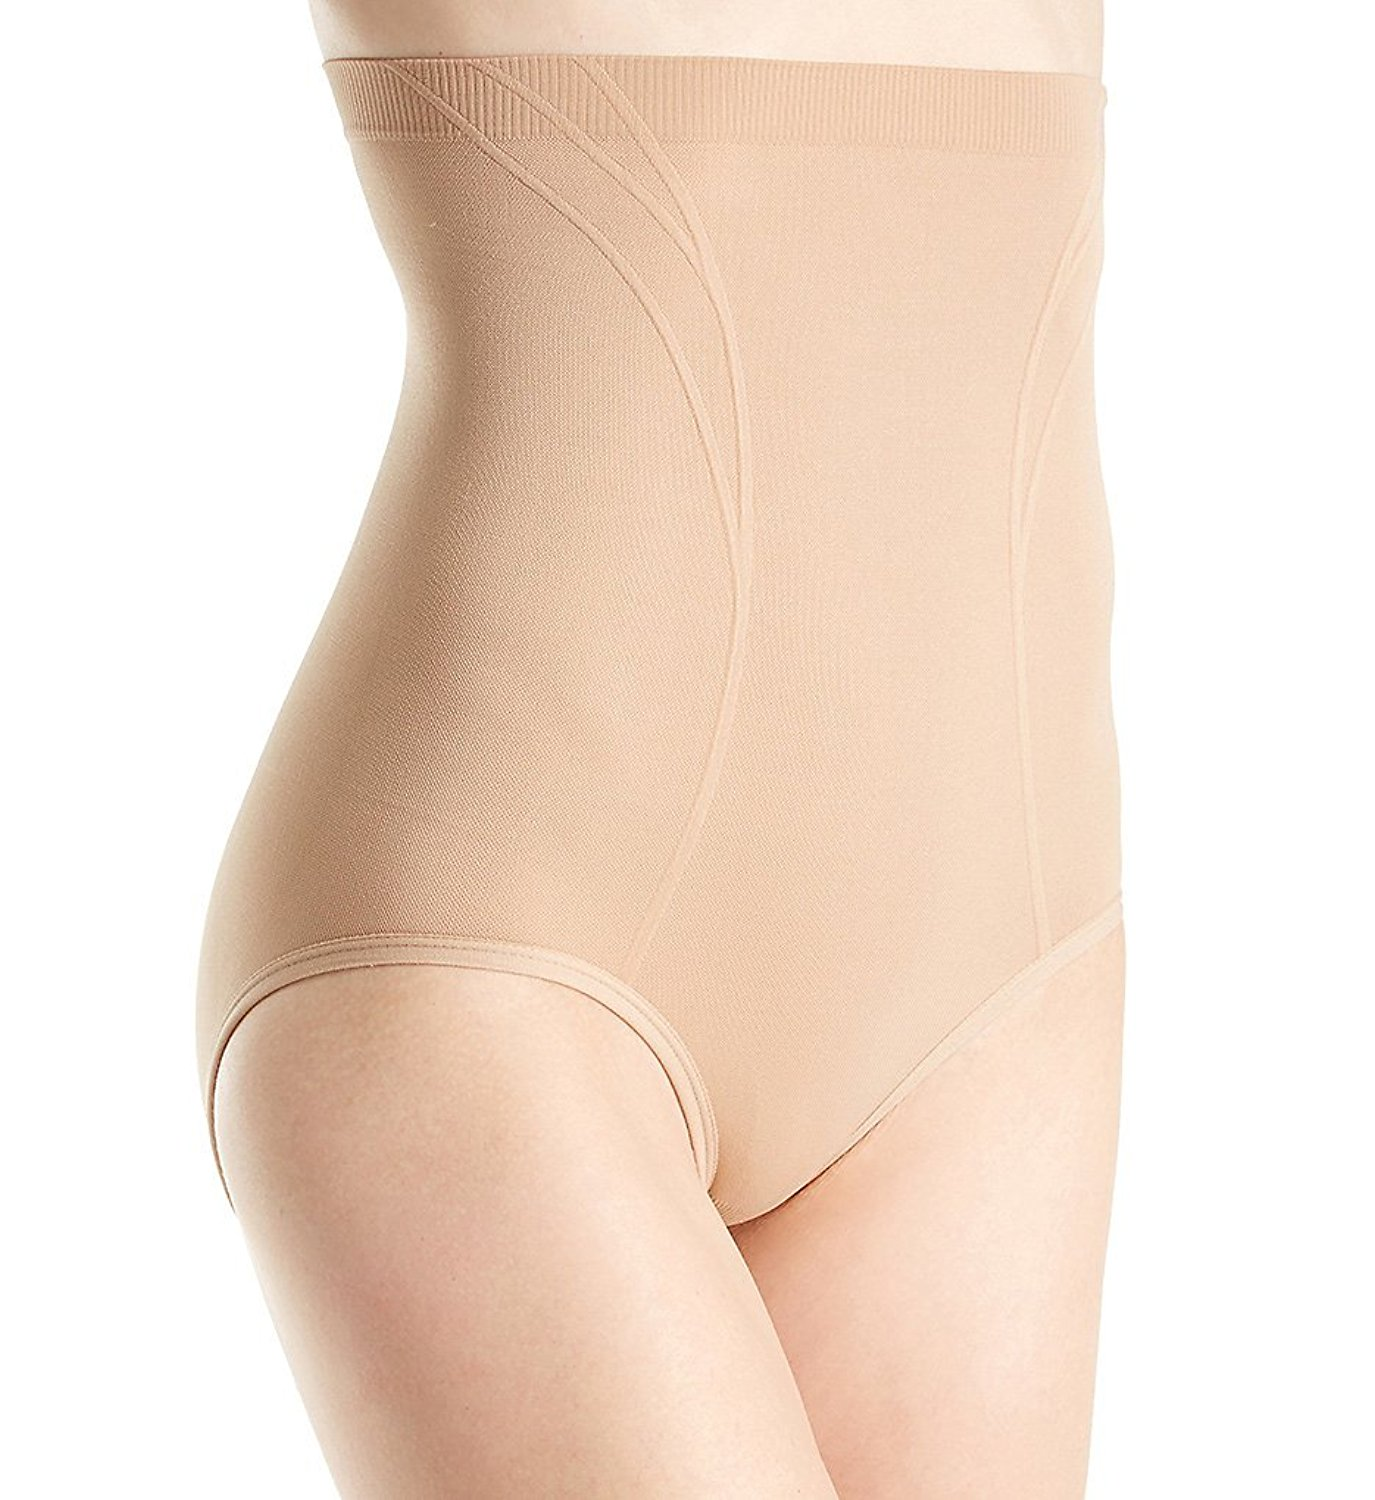 Body Wrap Retro Lites High Waist Shaping Panty (6101342)